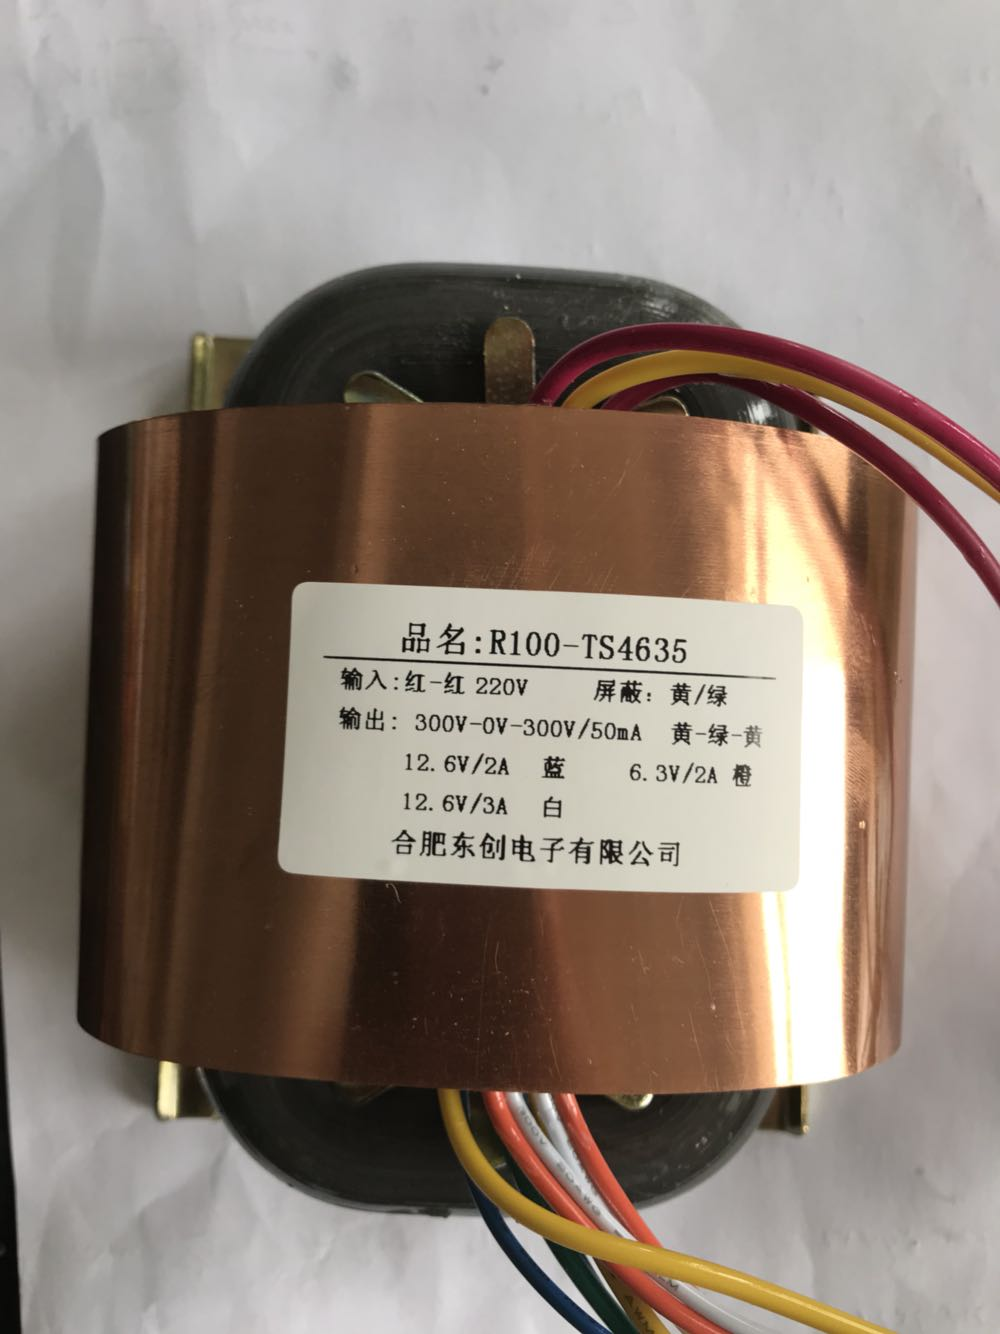 300V-0-300V 50mA 12.6V 3A 12.6V 2A 6.3V 2A R Core Transformer 100VA R100 custom transformer 220V copper shield Power amplifier300V-0-300V 50mA 12.6V 3A 12.6V 2A 6.3V 2A R Core Transformer 100VA R100 custom transformer 220V copper shield Power amplifier